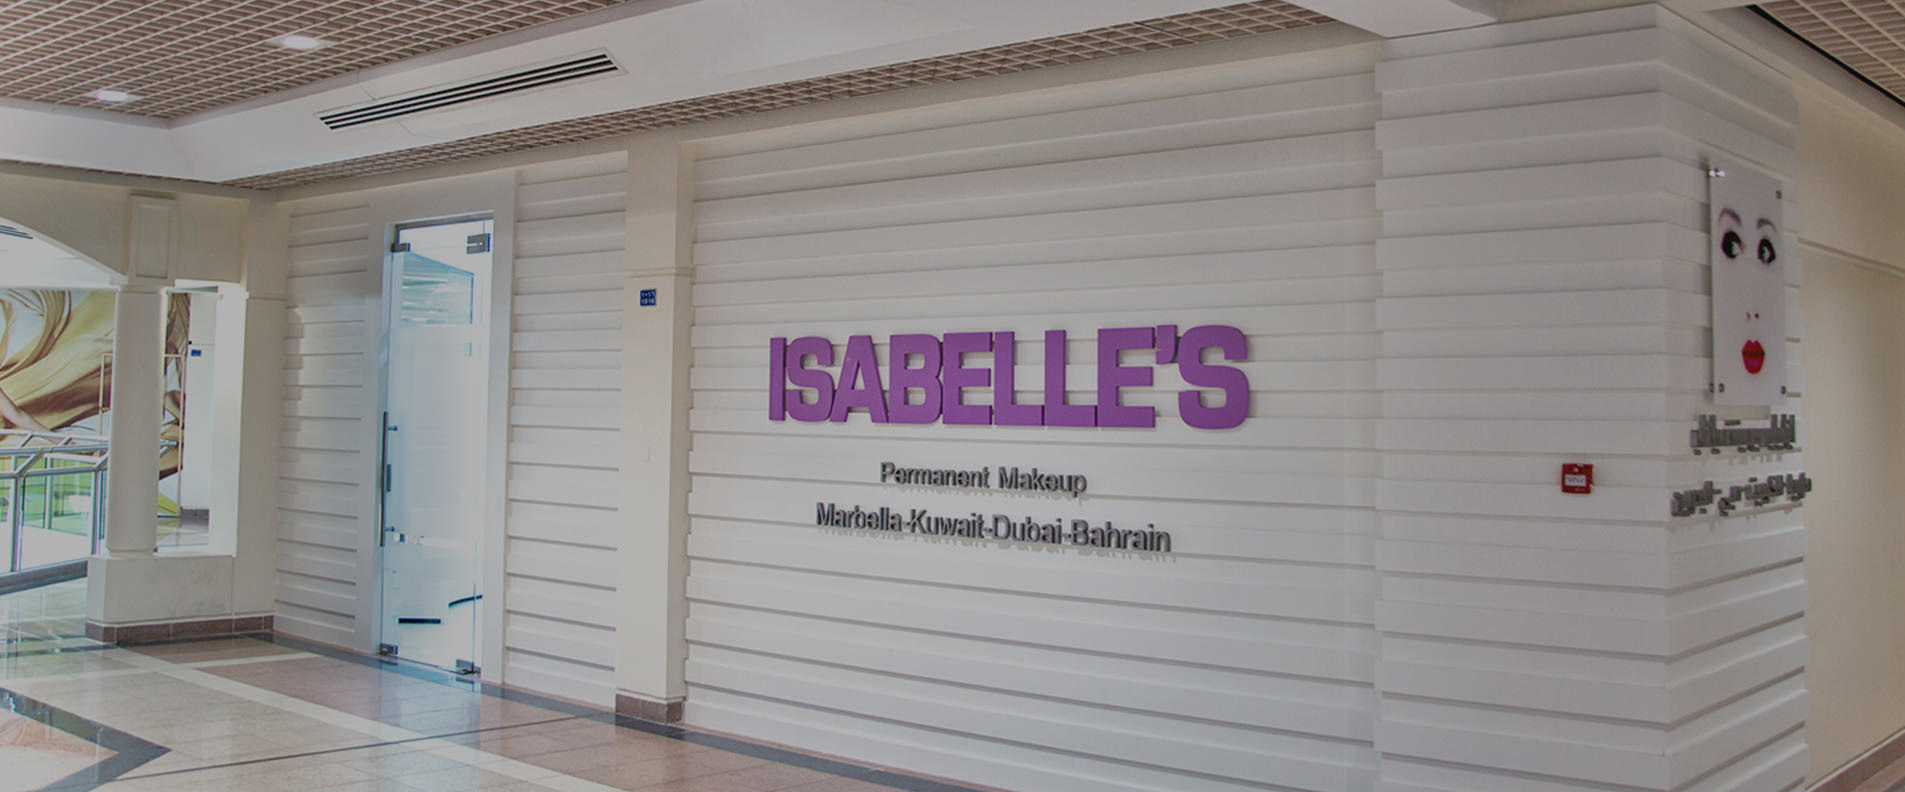 The front view of the Isabelle's Permanent Makeup Salon.